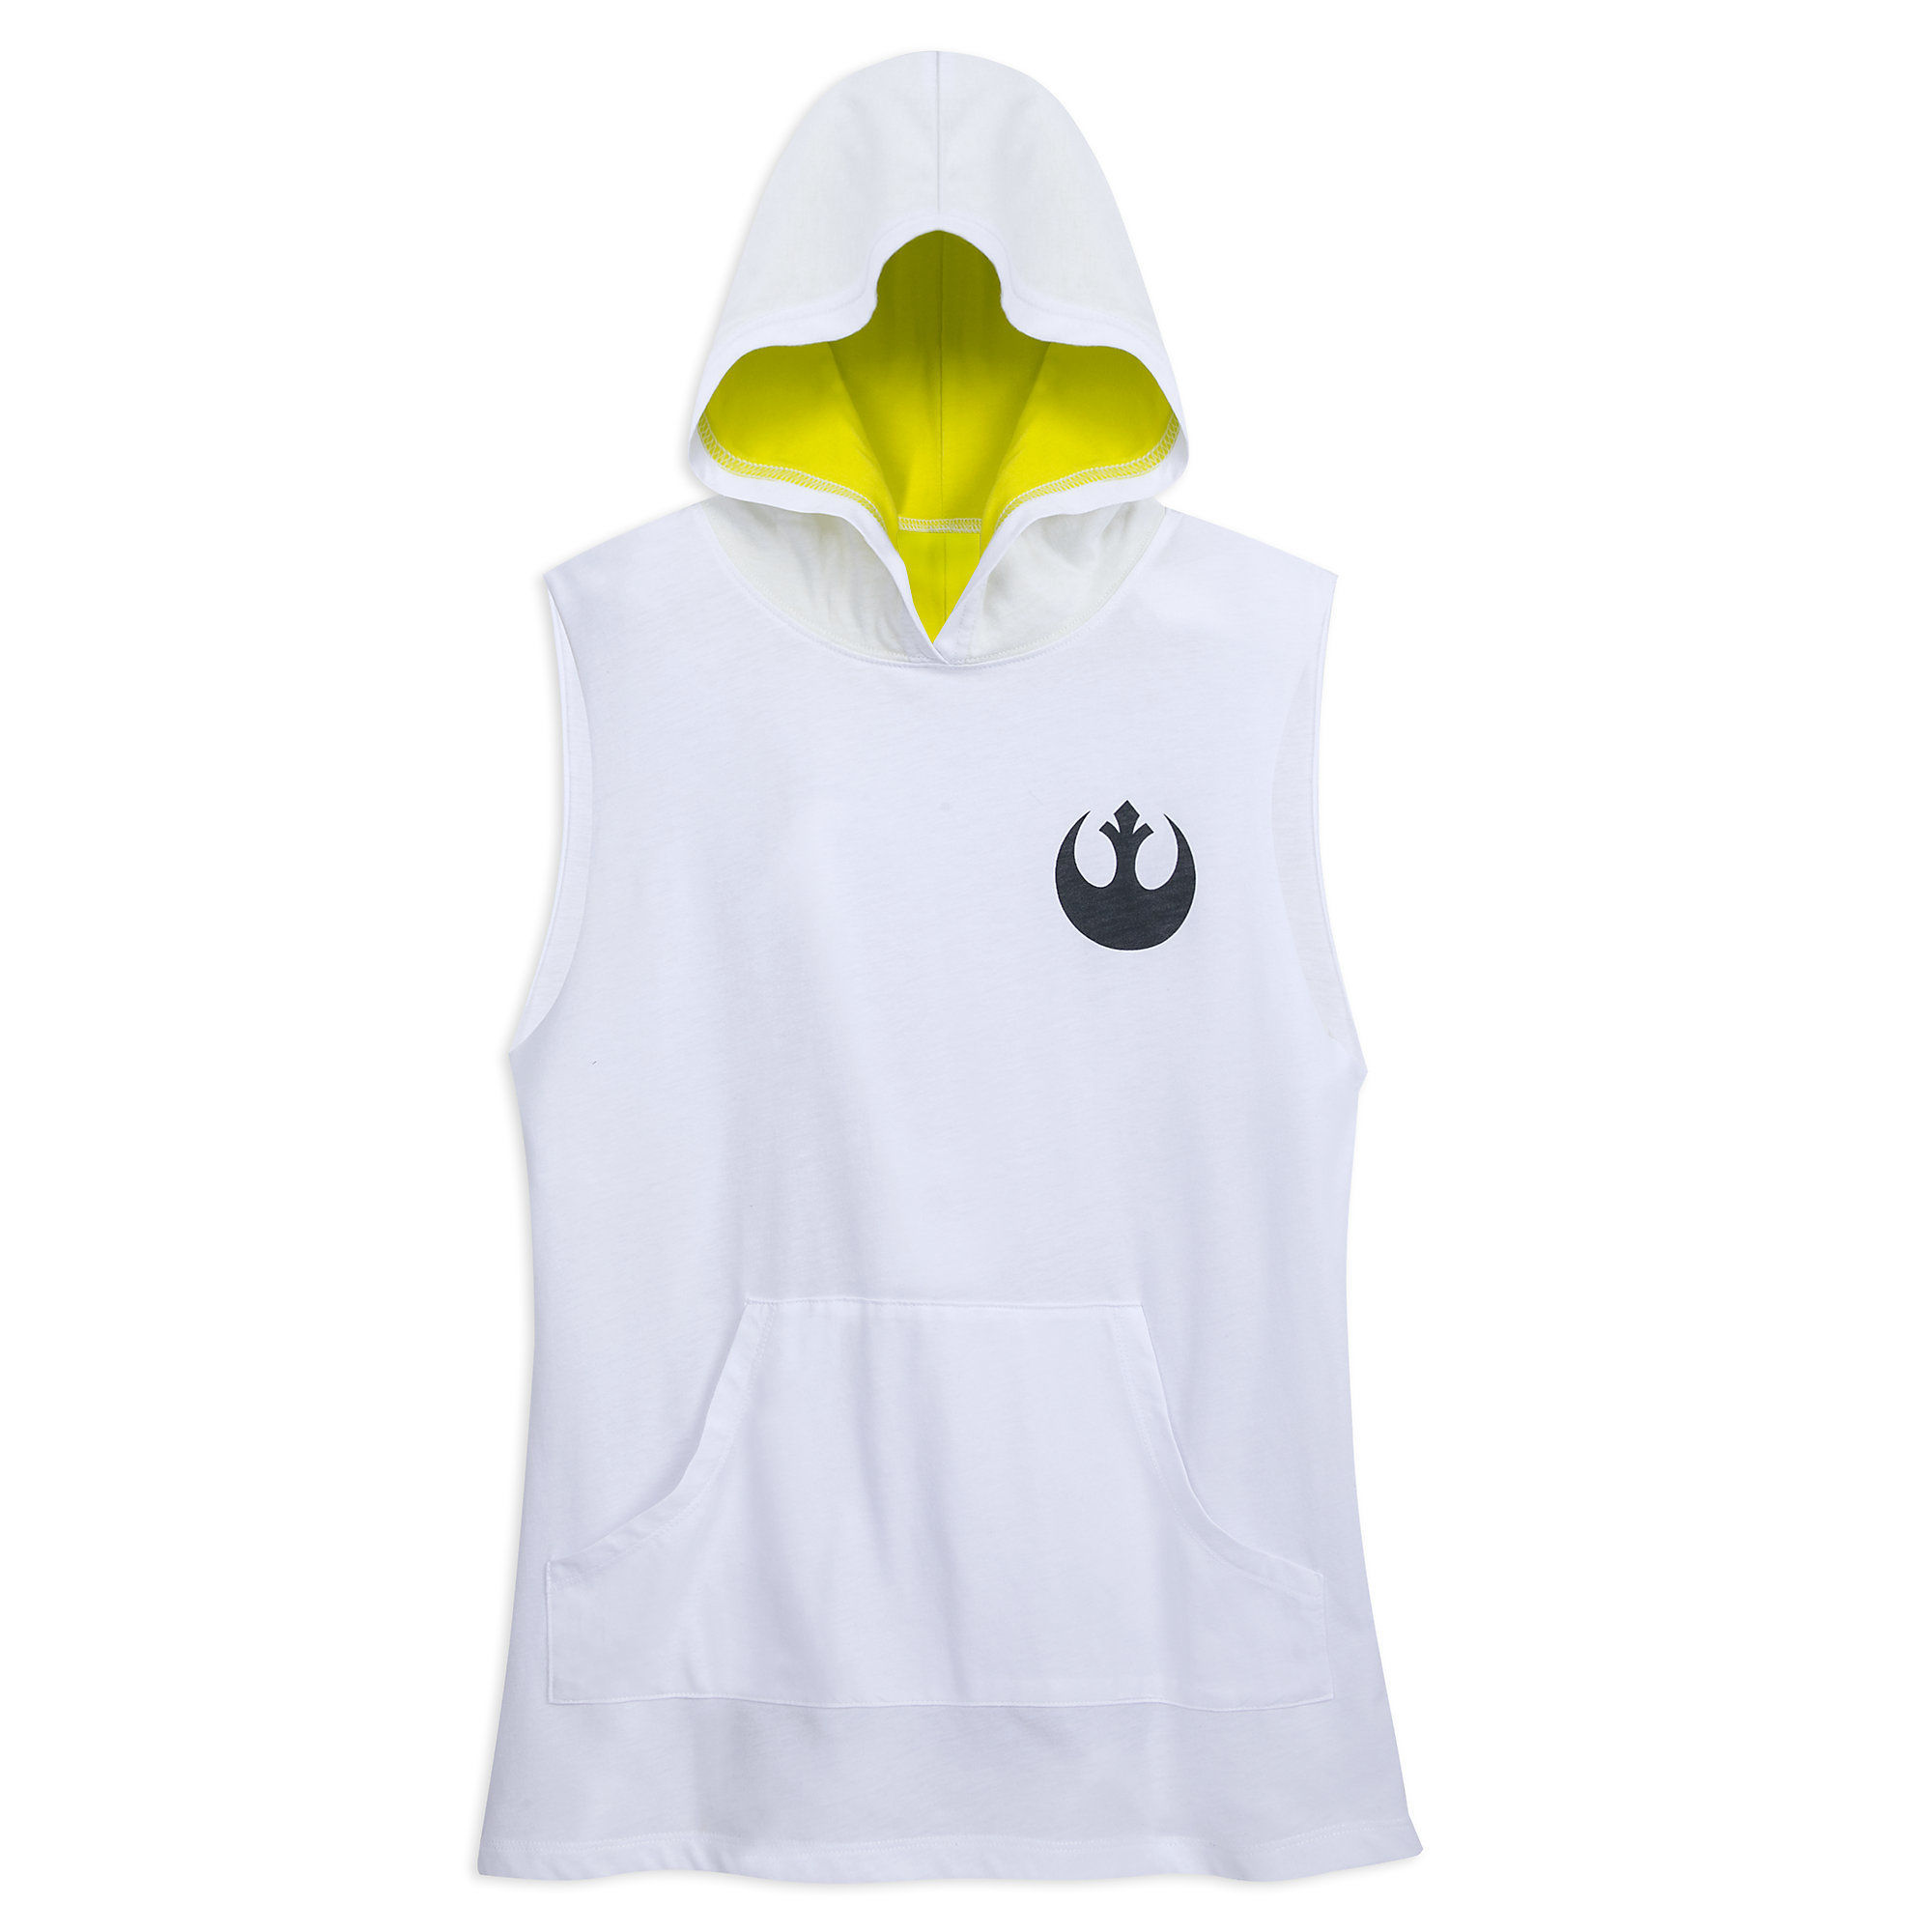 Women's Star Wars Hooded Tank Top at Shop Disney